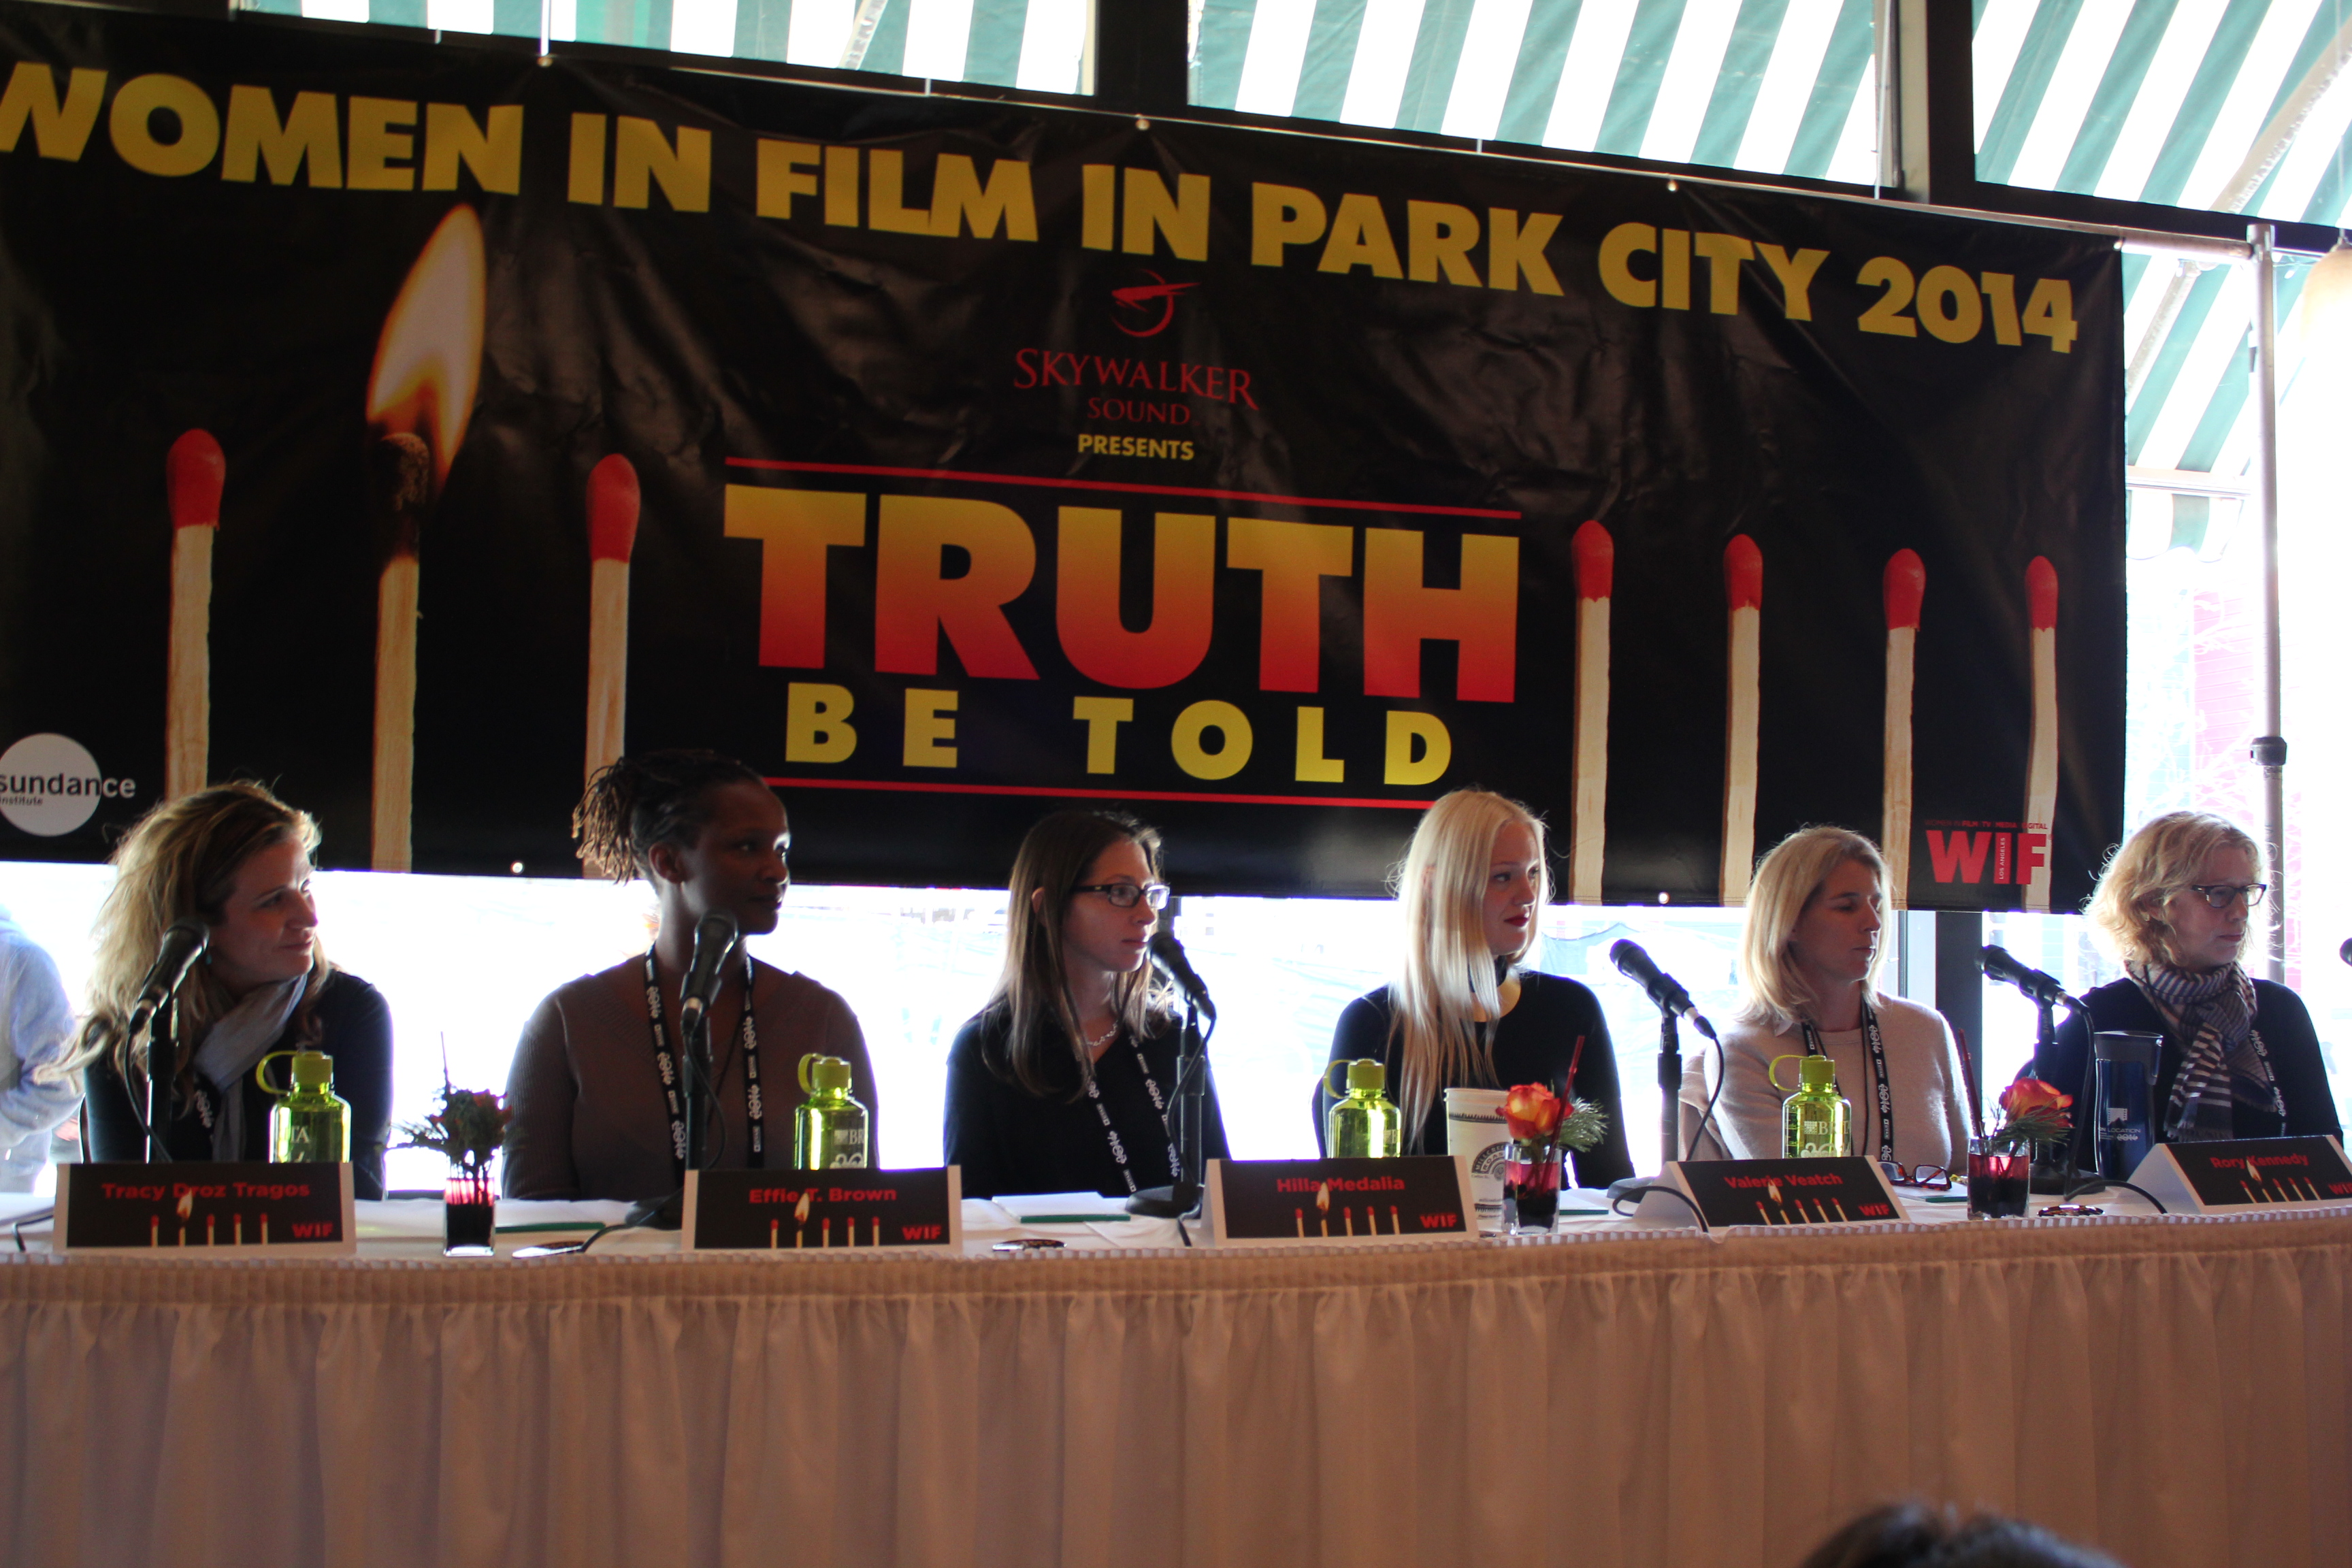 Copied from Realscreen - Women in Film's 'Truth Be Told' panel session at the 2014 Sundance Film Festival